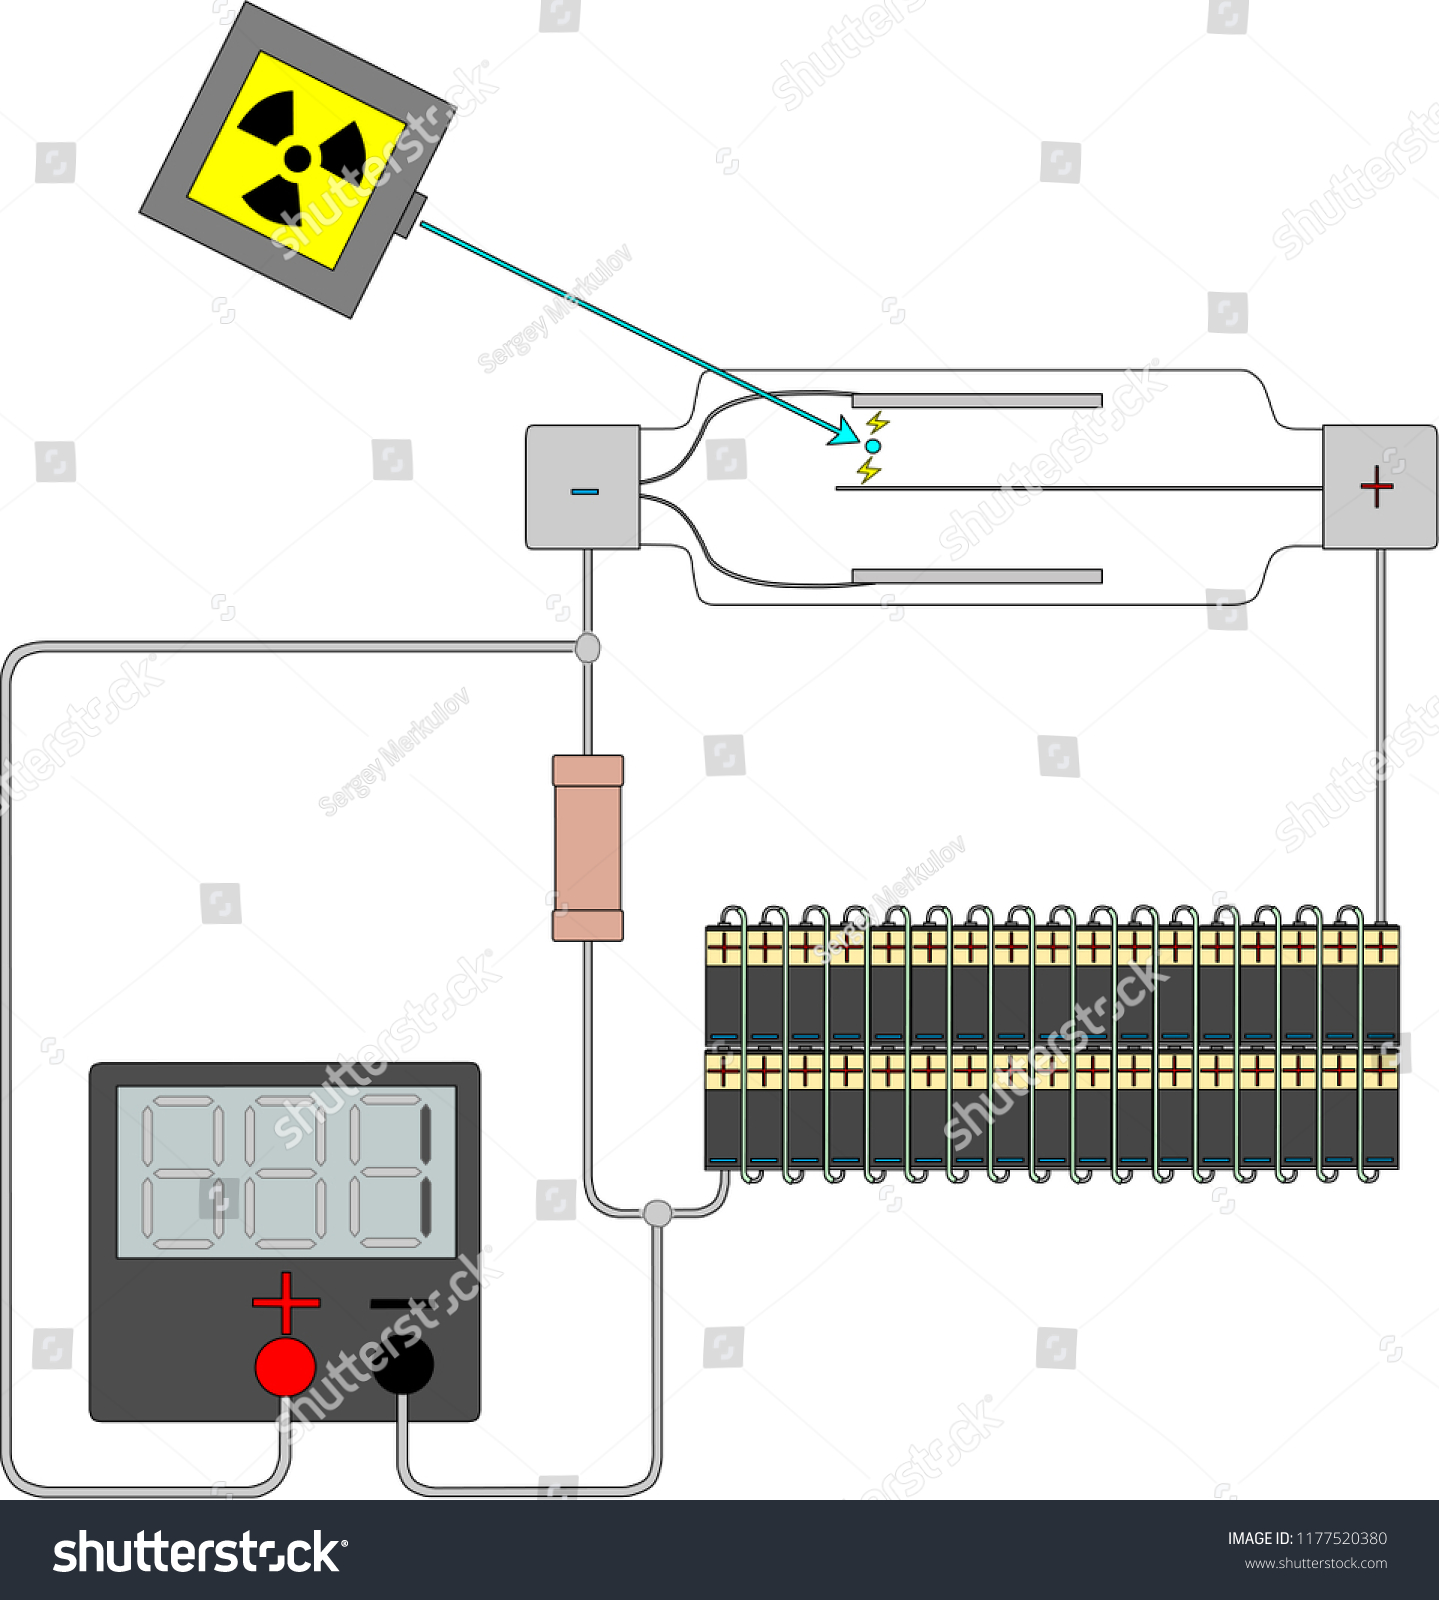 Geiger Counter Tube Stock Vector Royalty Free 1177520380 With Usb Interface Schematics